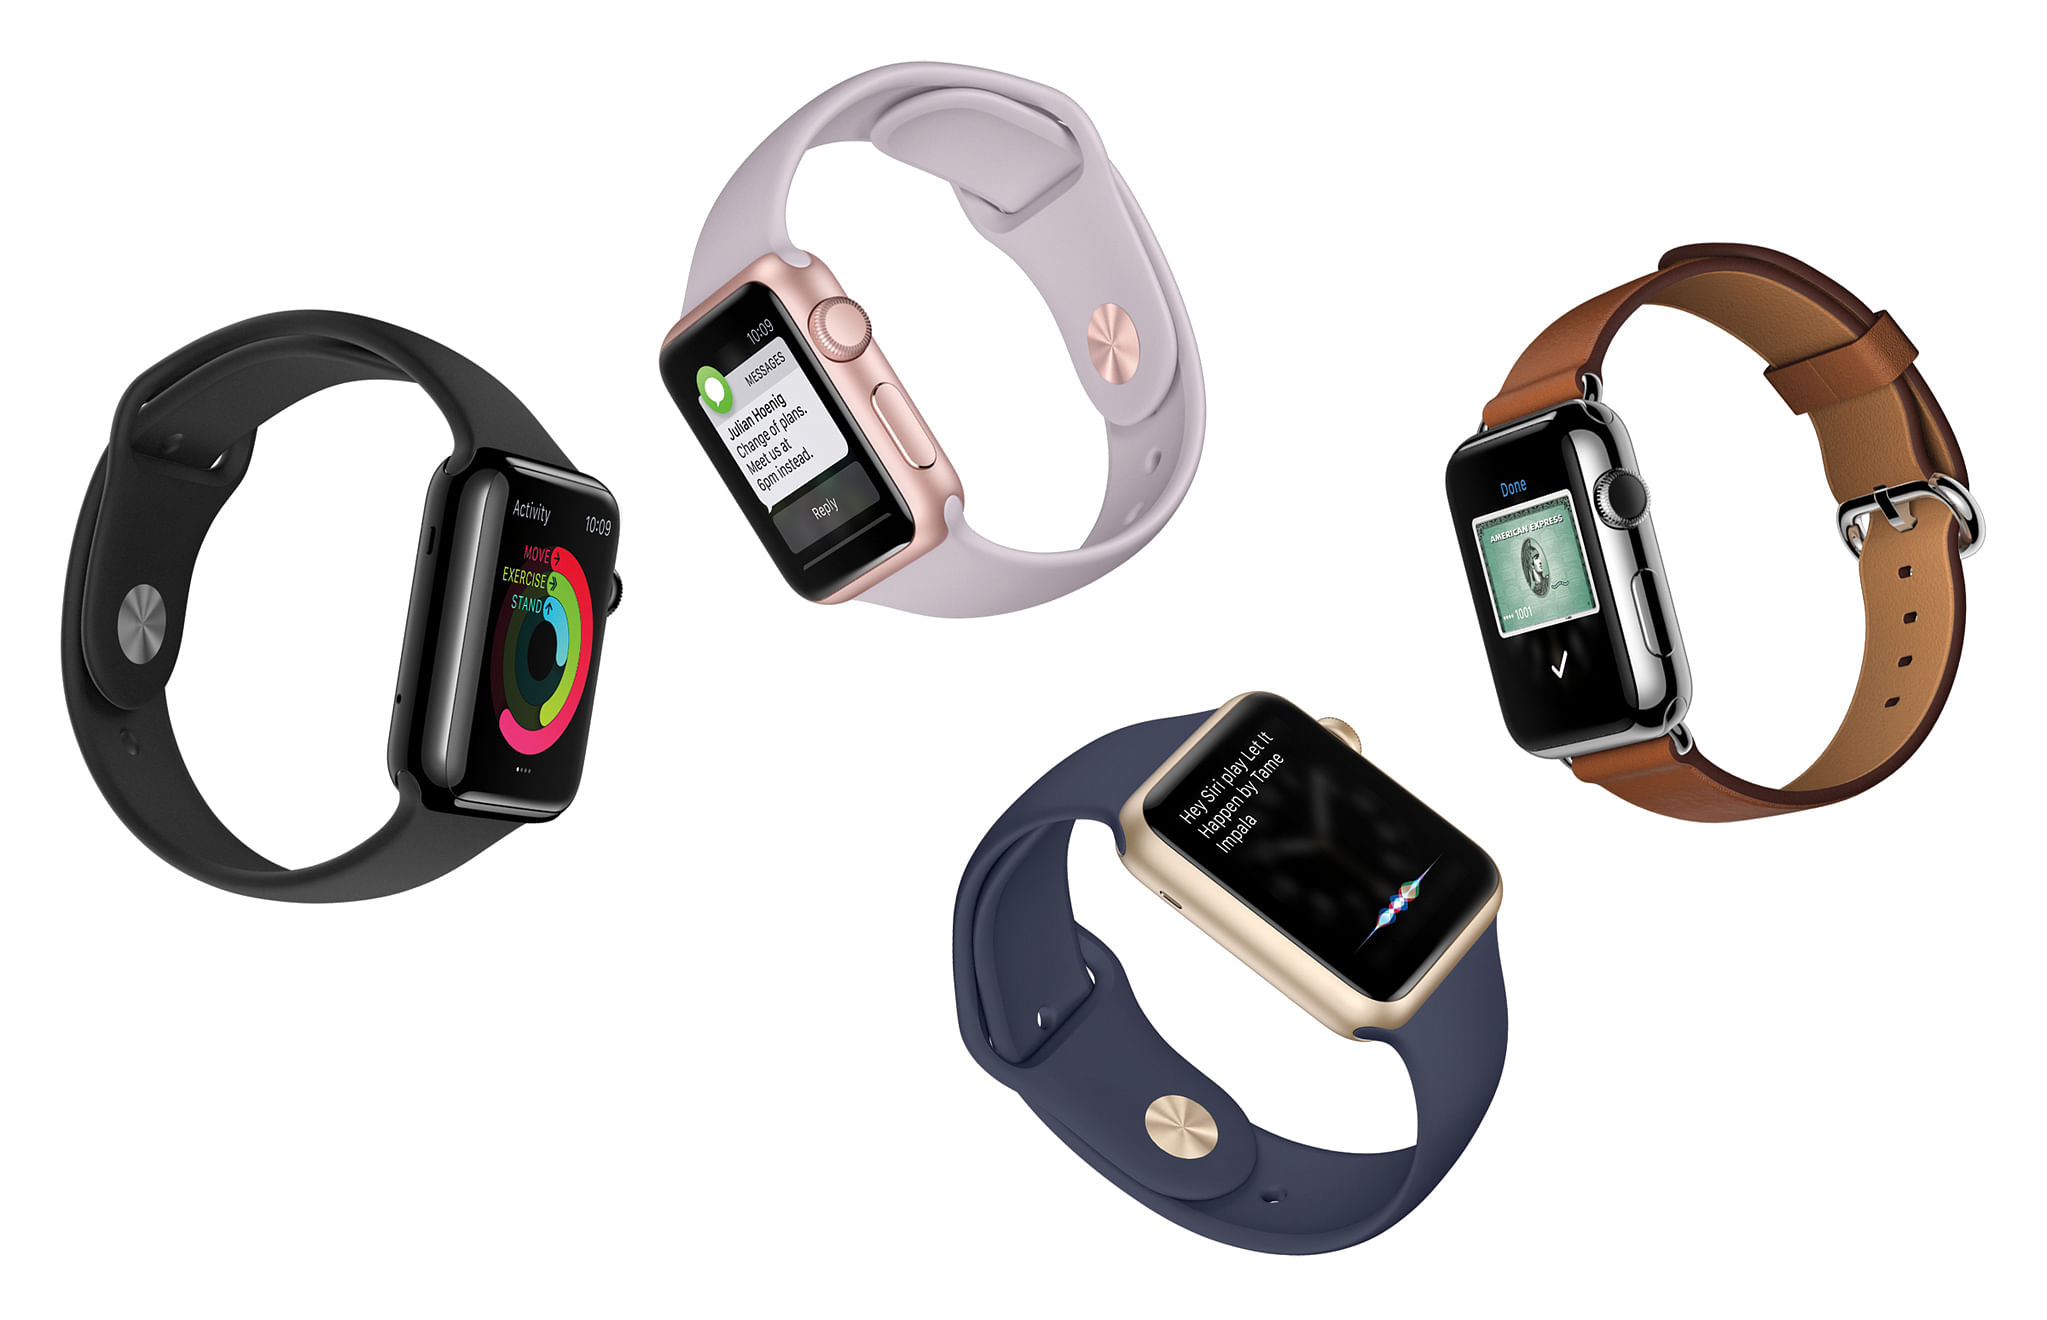 Review: Apple Watch Sport (Rose Gold) with watchOS 2